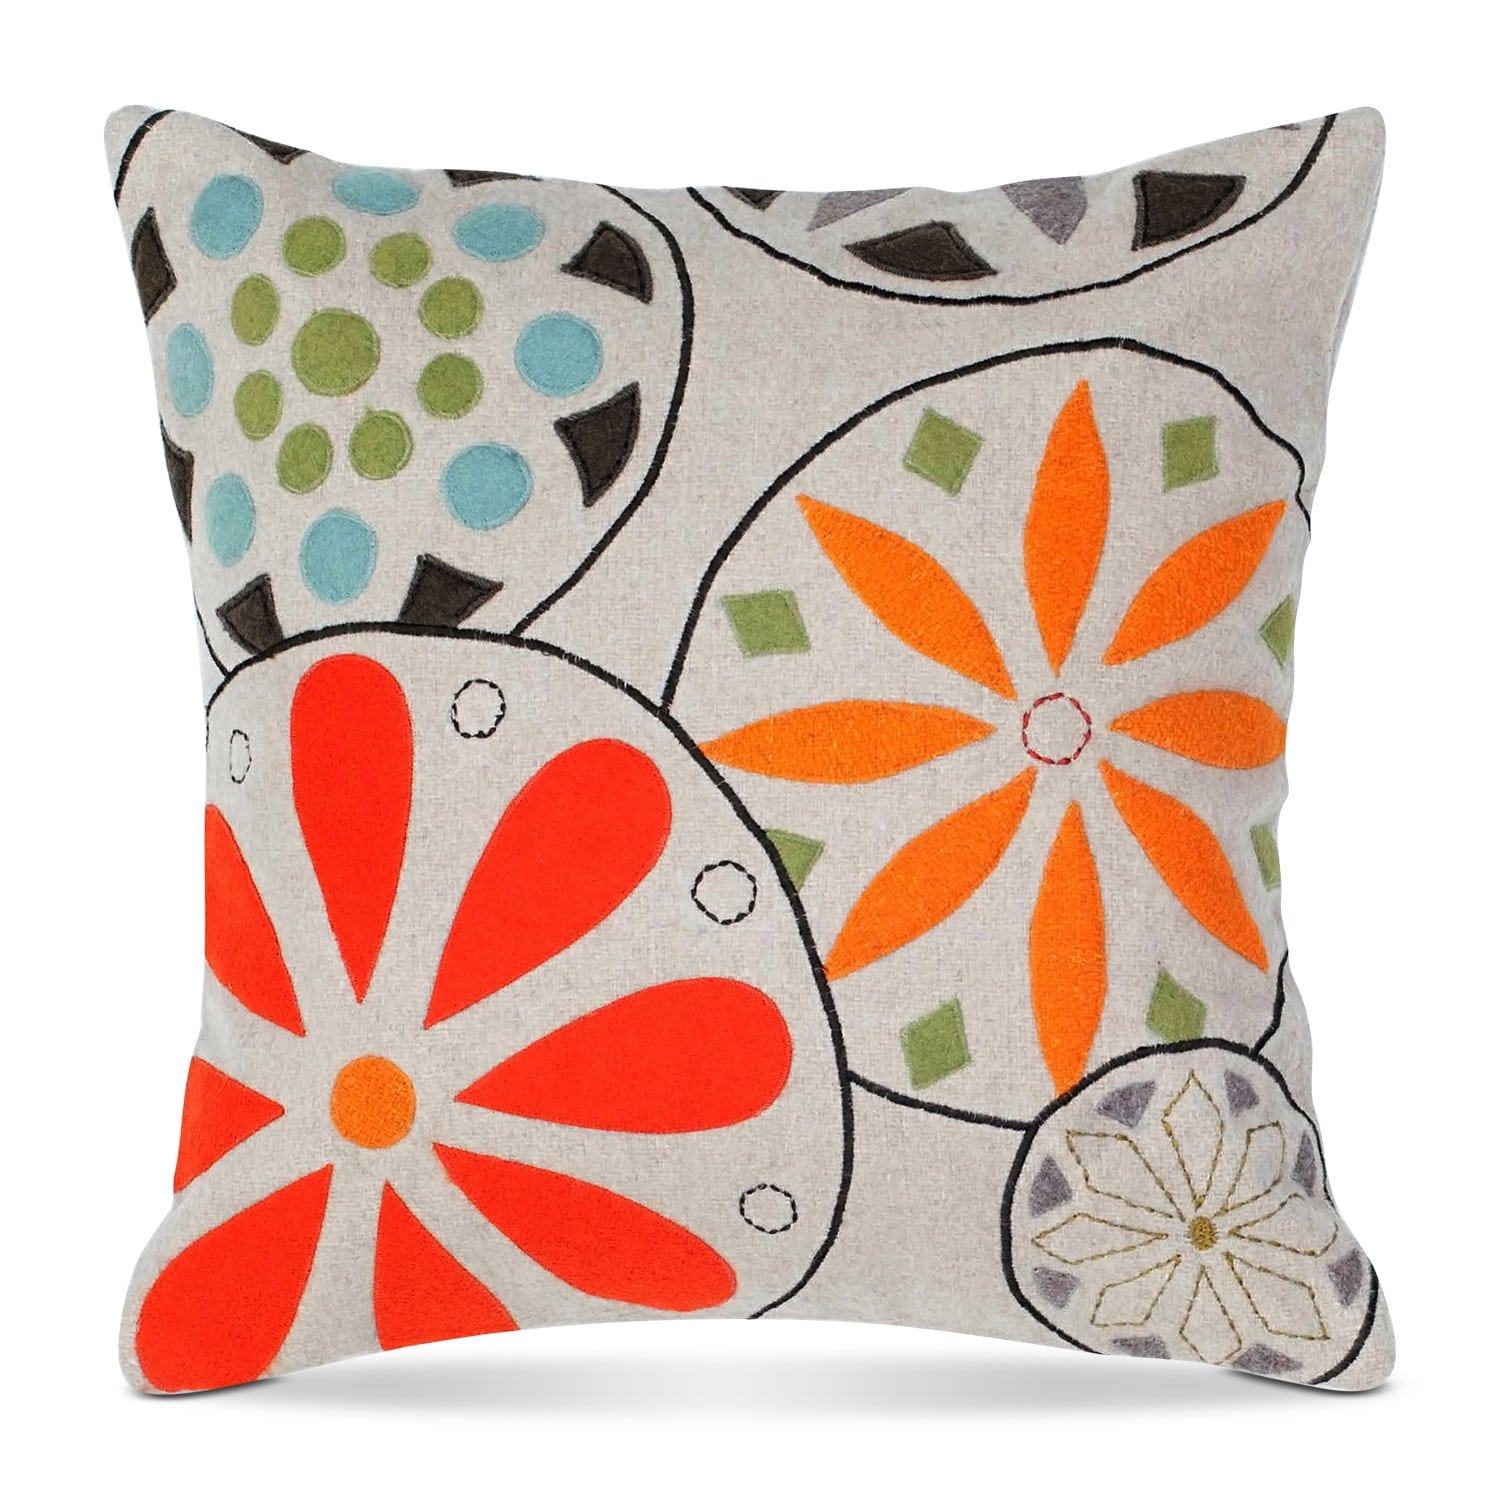 Rachel Decorative Pillow